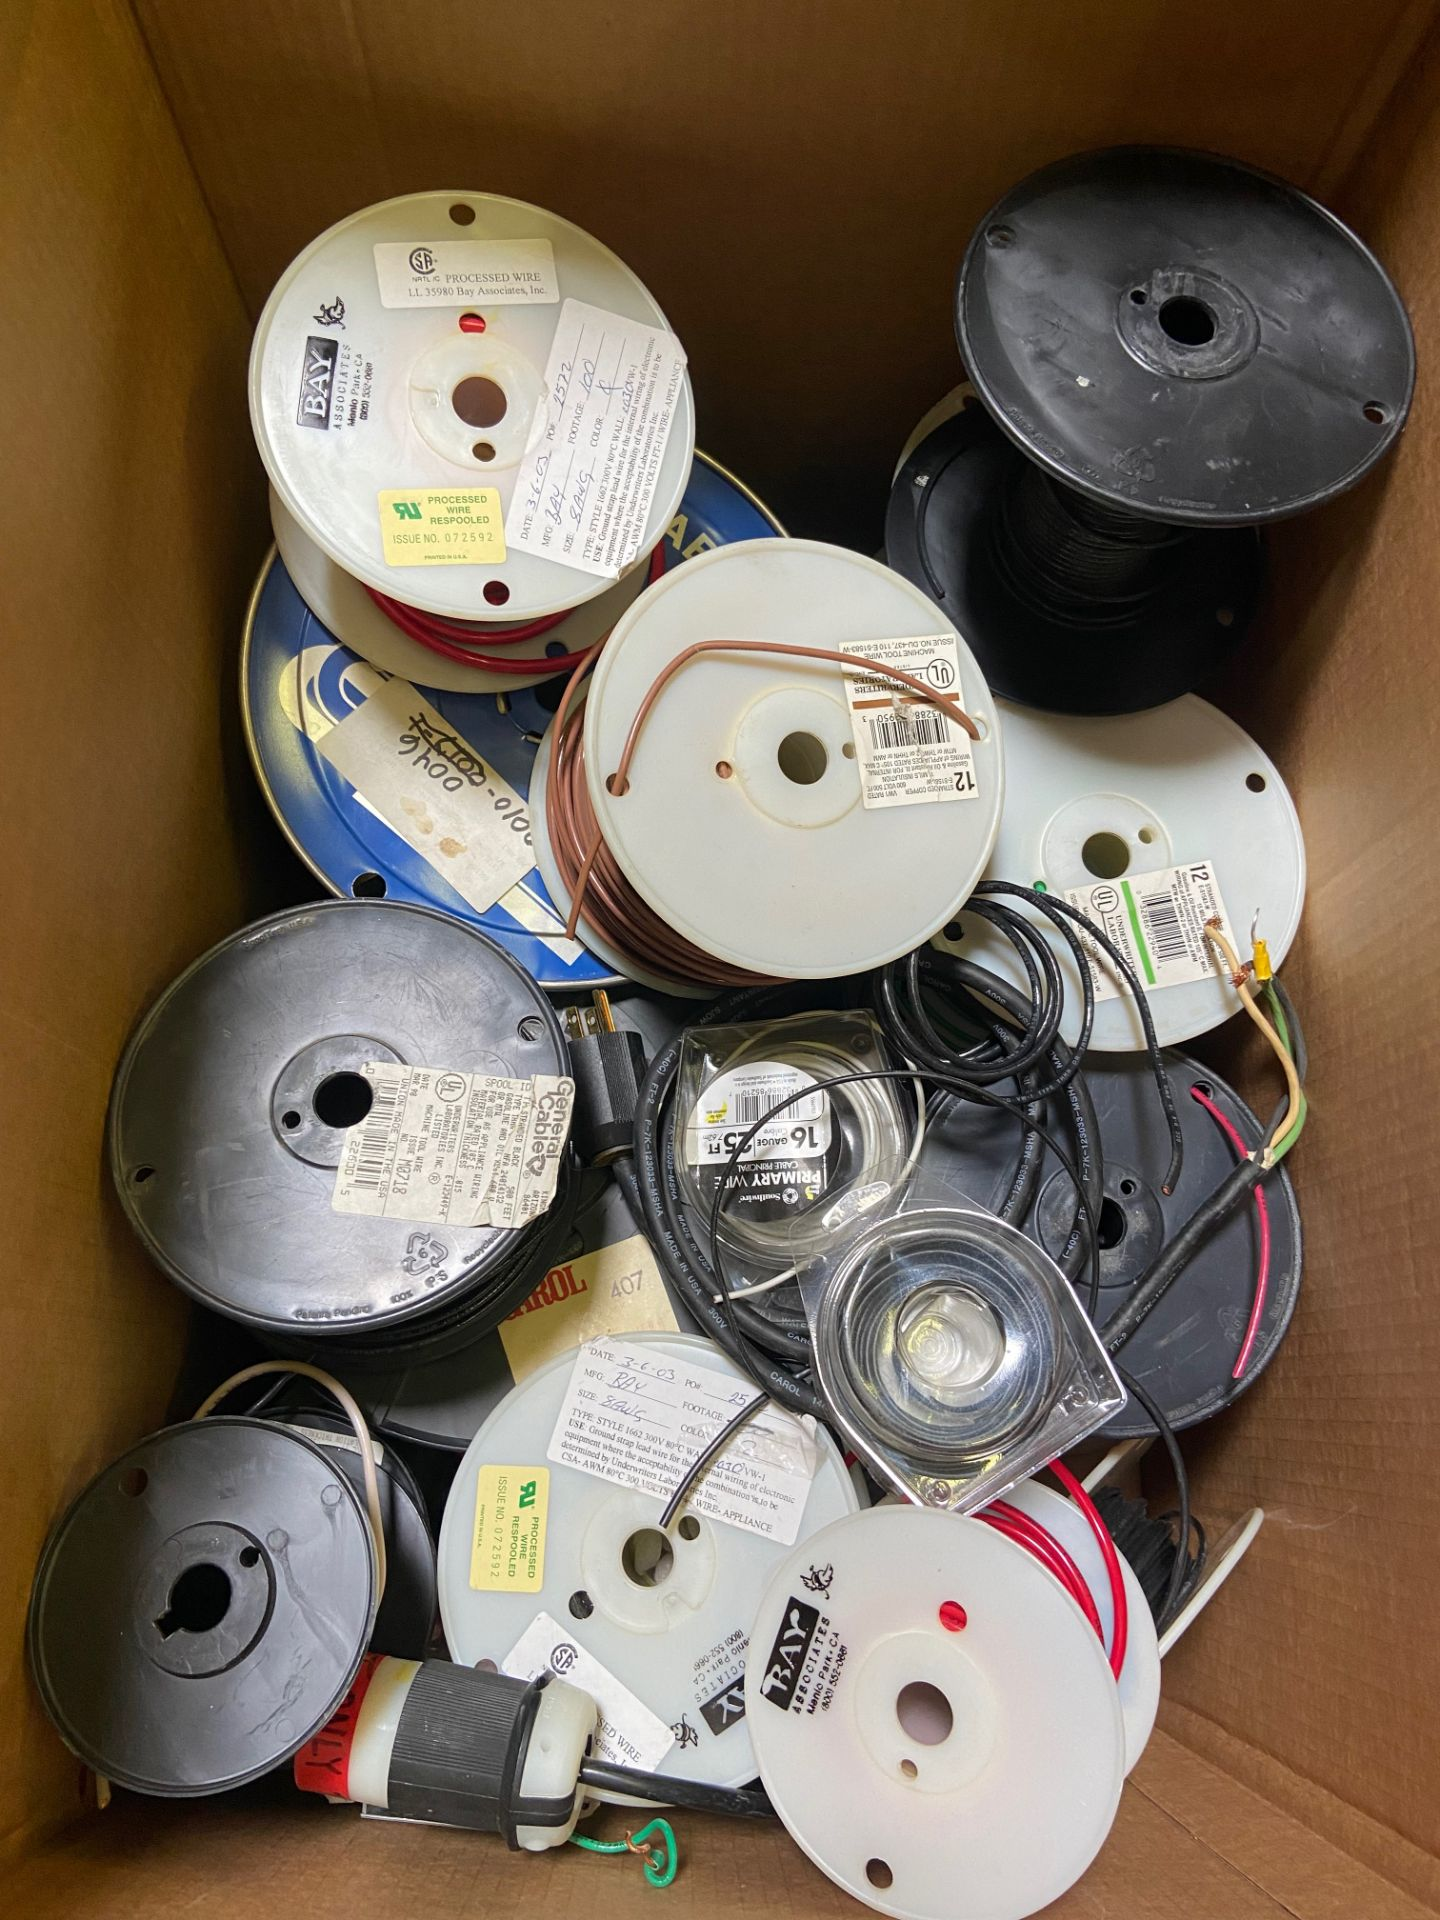 Miscellaneous Electrical/ Cable, Air House (All Pictured), Rigging Fee: $25 - Image 4 of 6